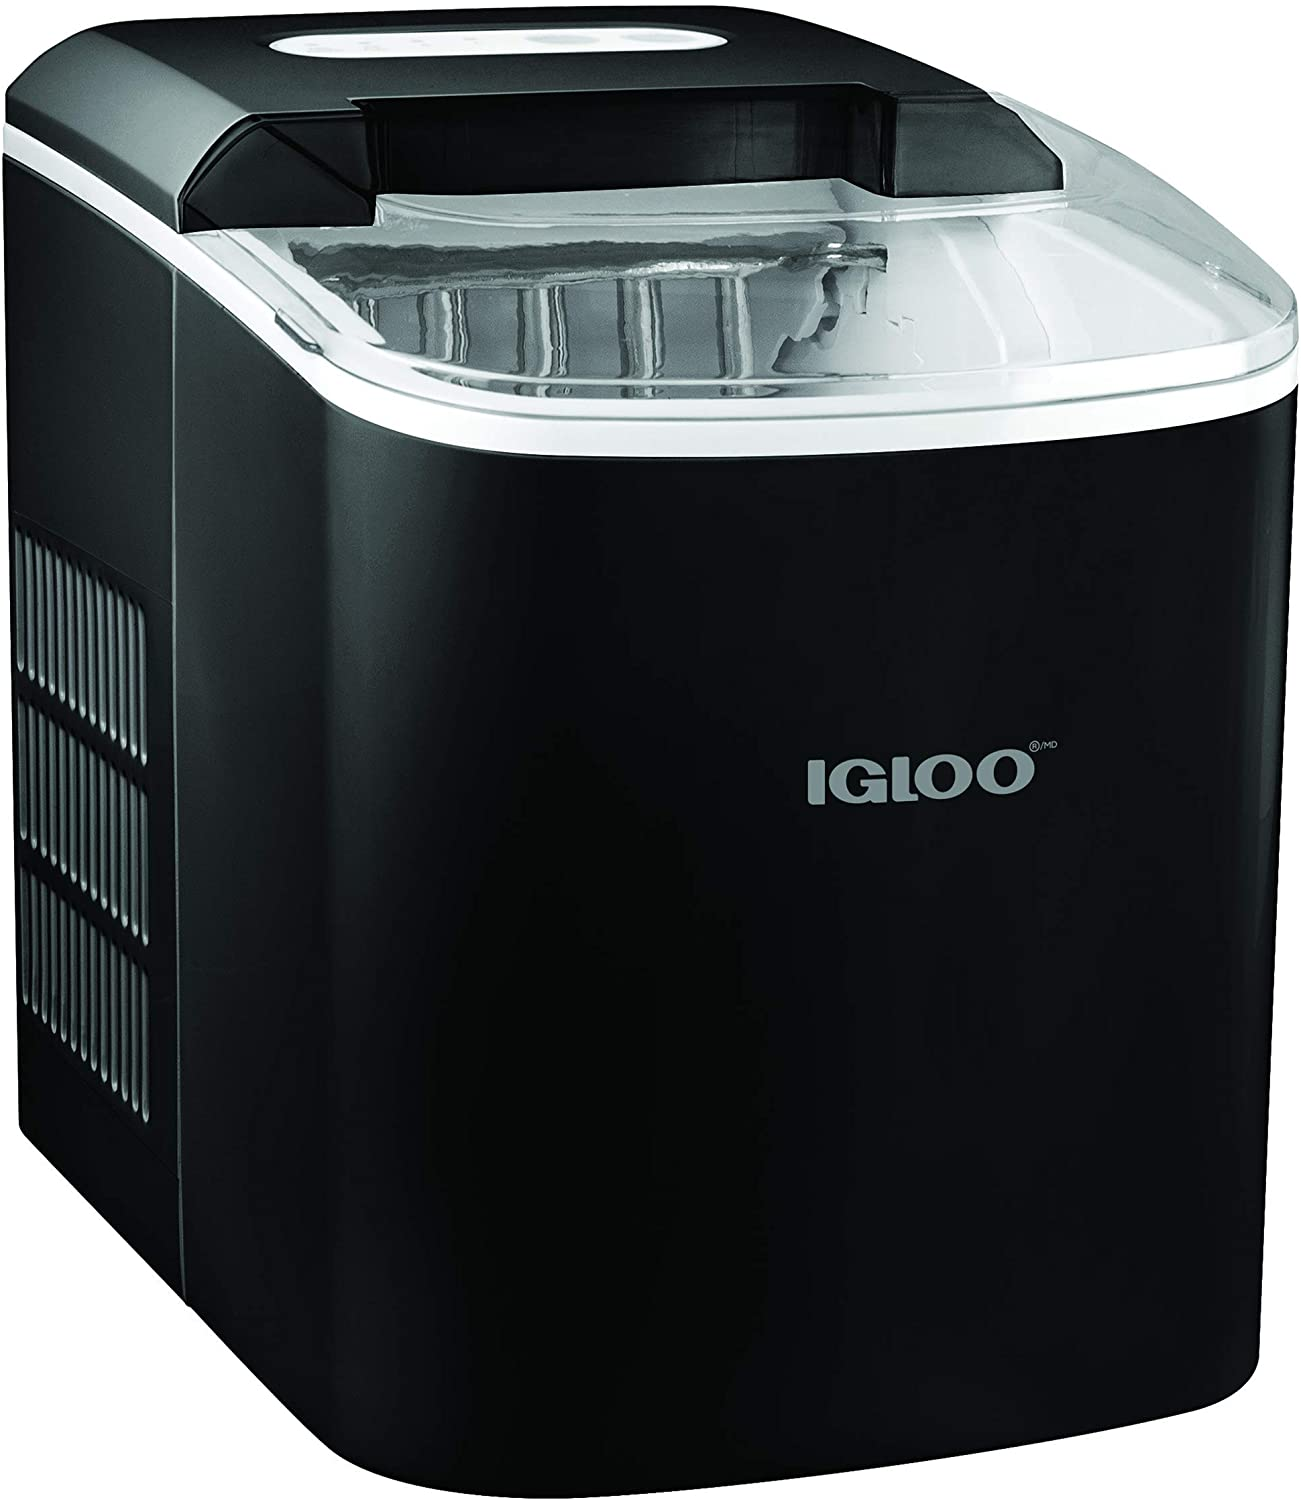 Portable Electric Countertop 26-Pound Automatic Ice Maker In Black - Igloo ICEB26BK